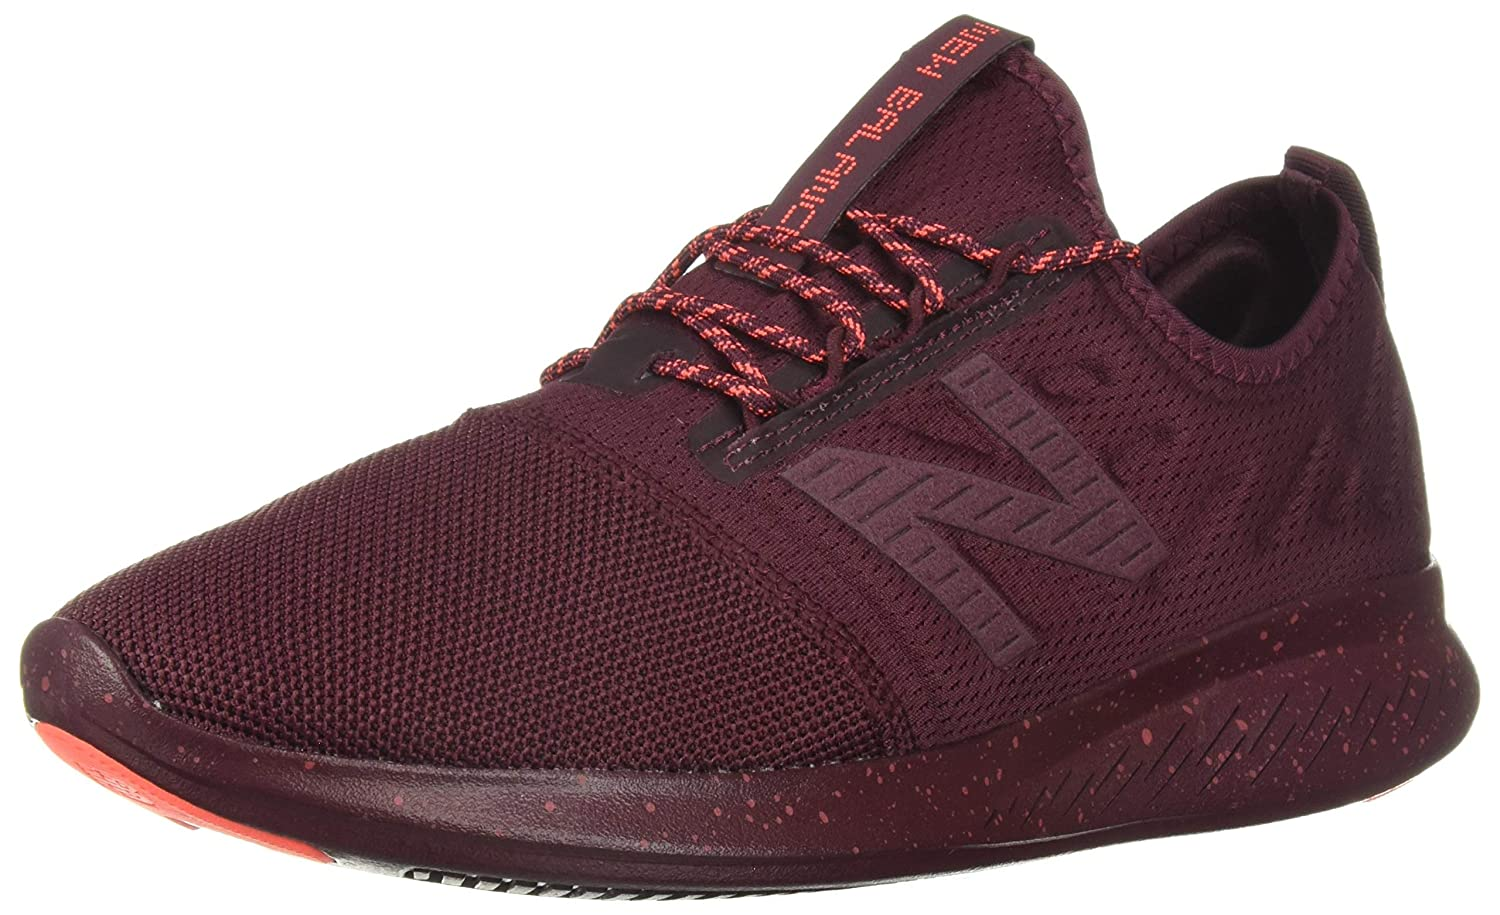 Nubuck Burgundy Earth rouge Dragonfly New Balance Fuel Core Coast V4, Running Femme 40.5 EU